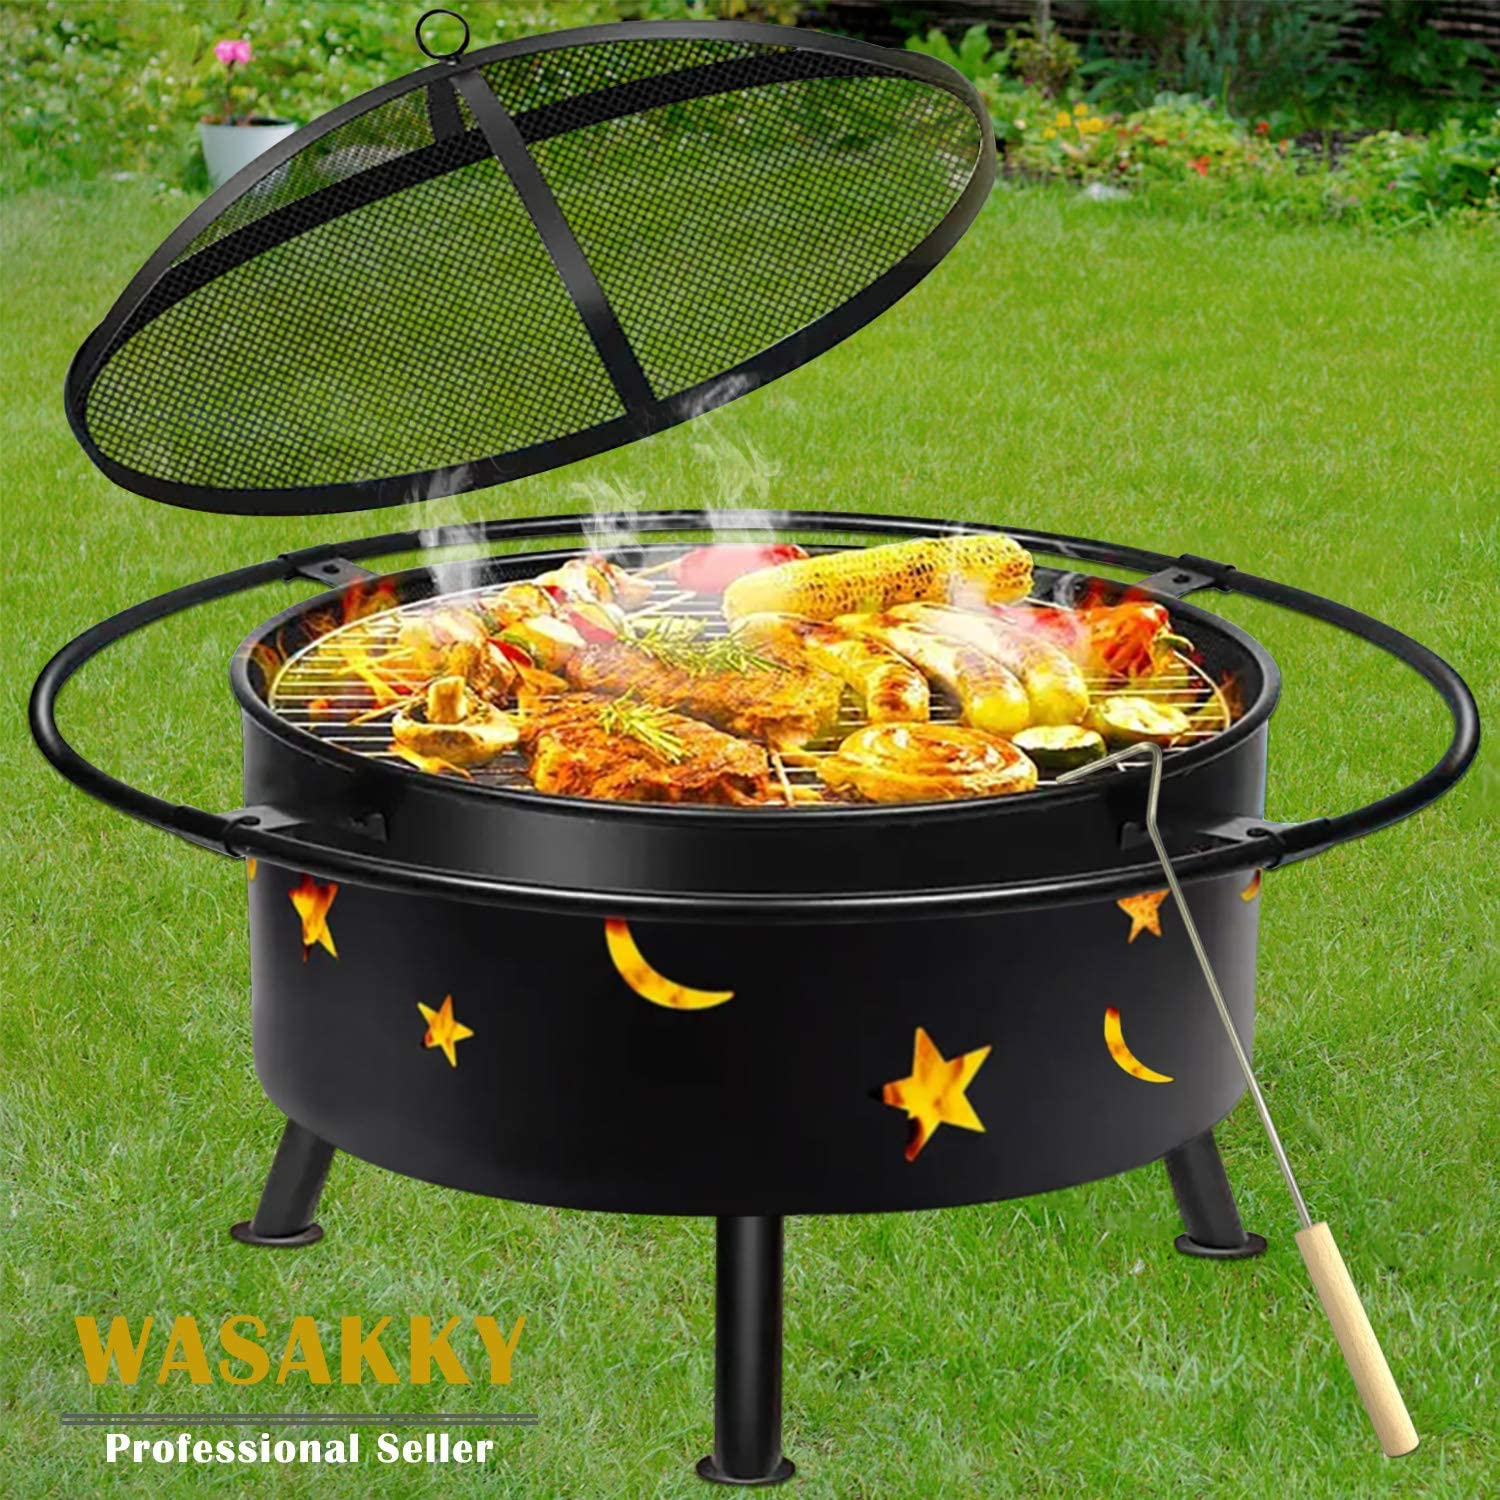 """Outdoor Fire Pits????Wood Burning Grill - 30"""" Round Steel Deep Bowl Firepit - Backyard Cosmic,Stars and Moons Firepit 2-in-1 for Outside Patio Cooking BBQ,Black"""